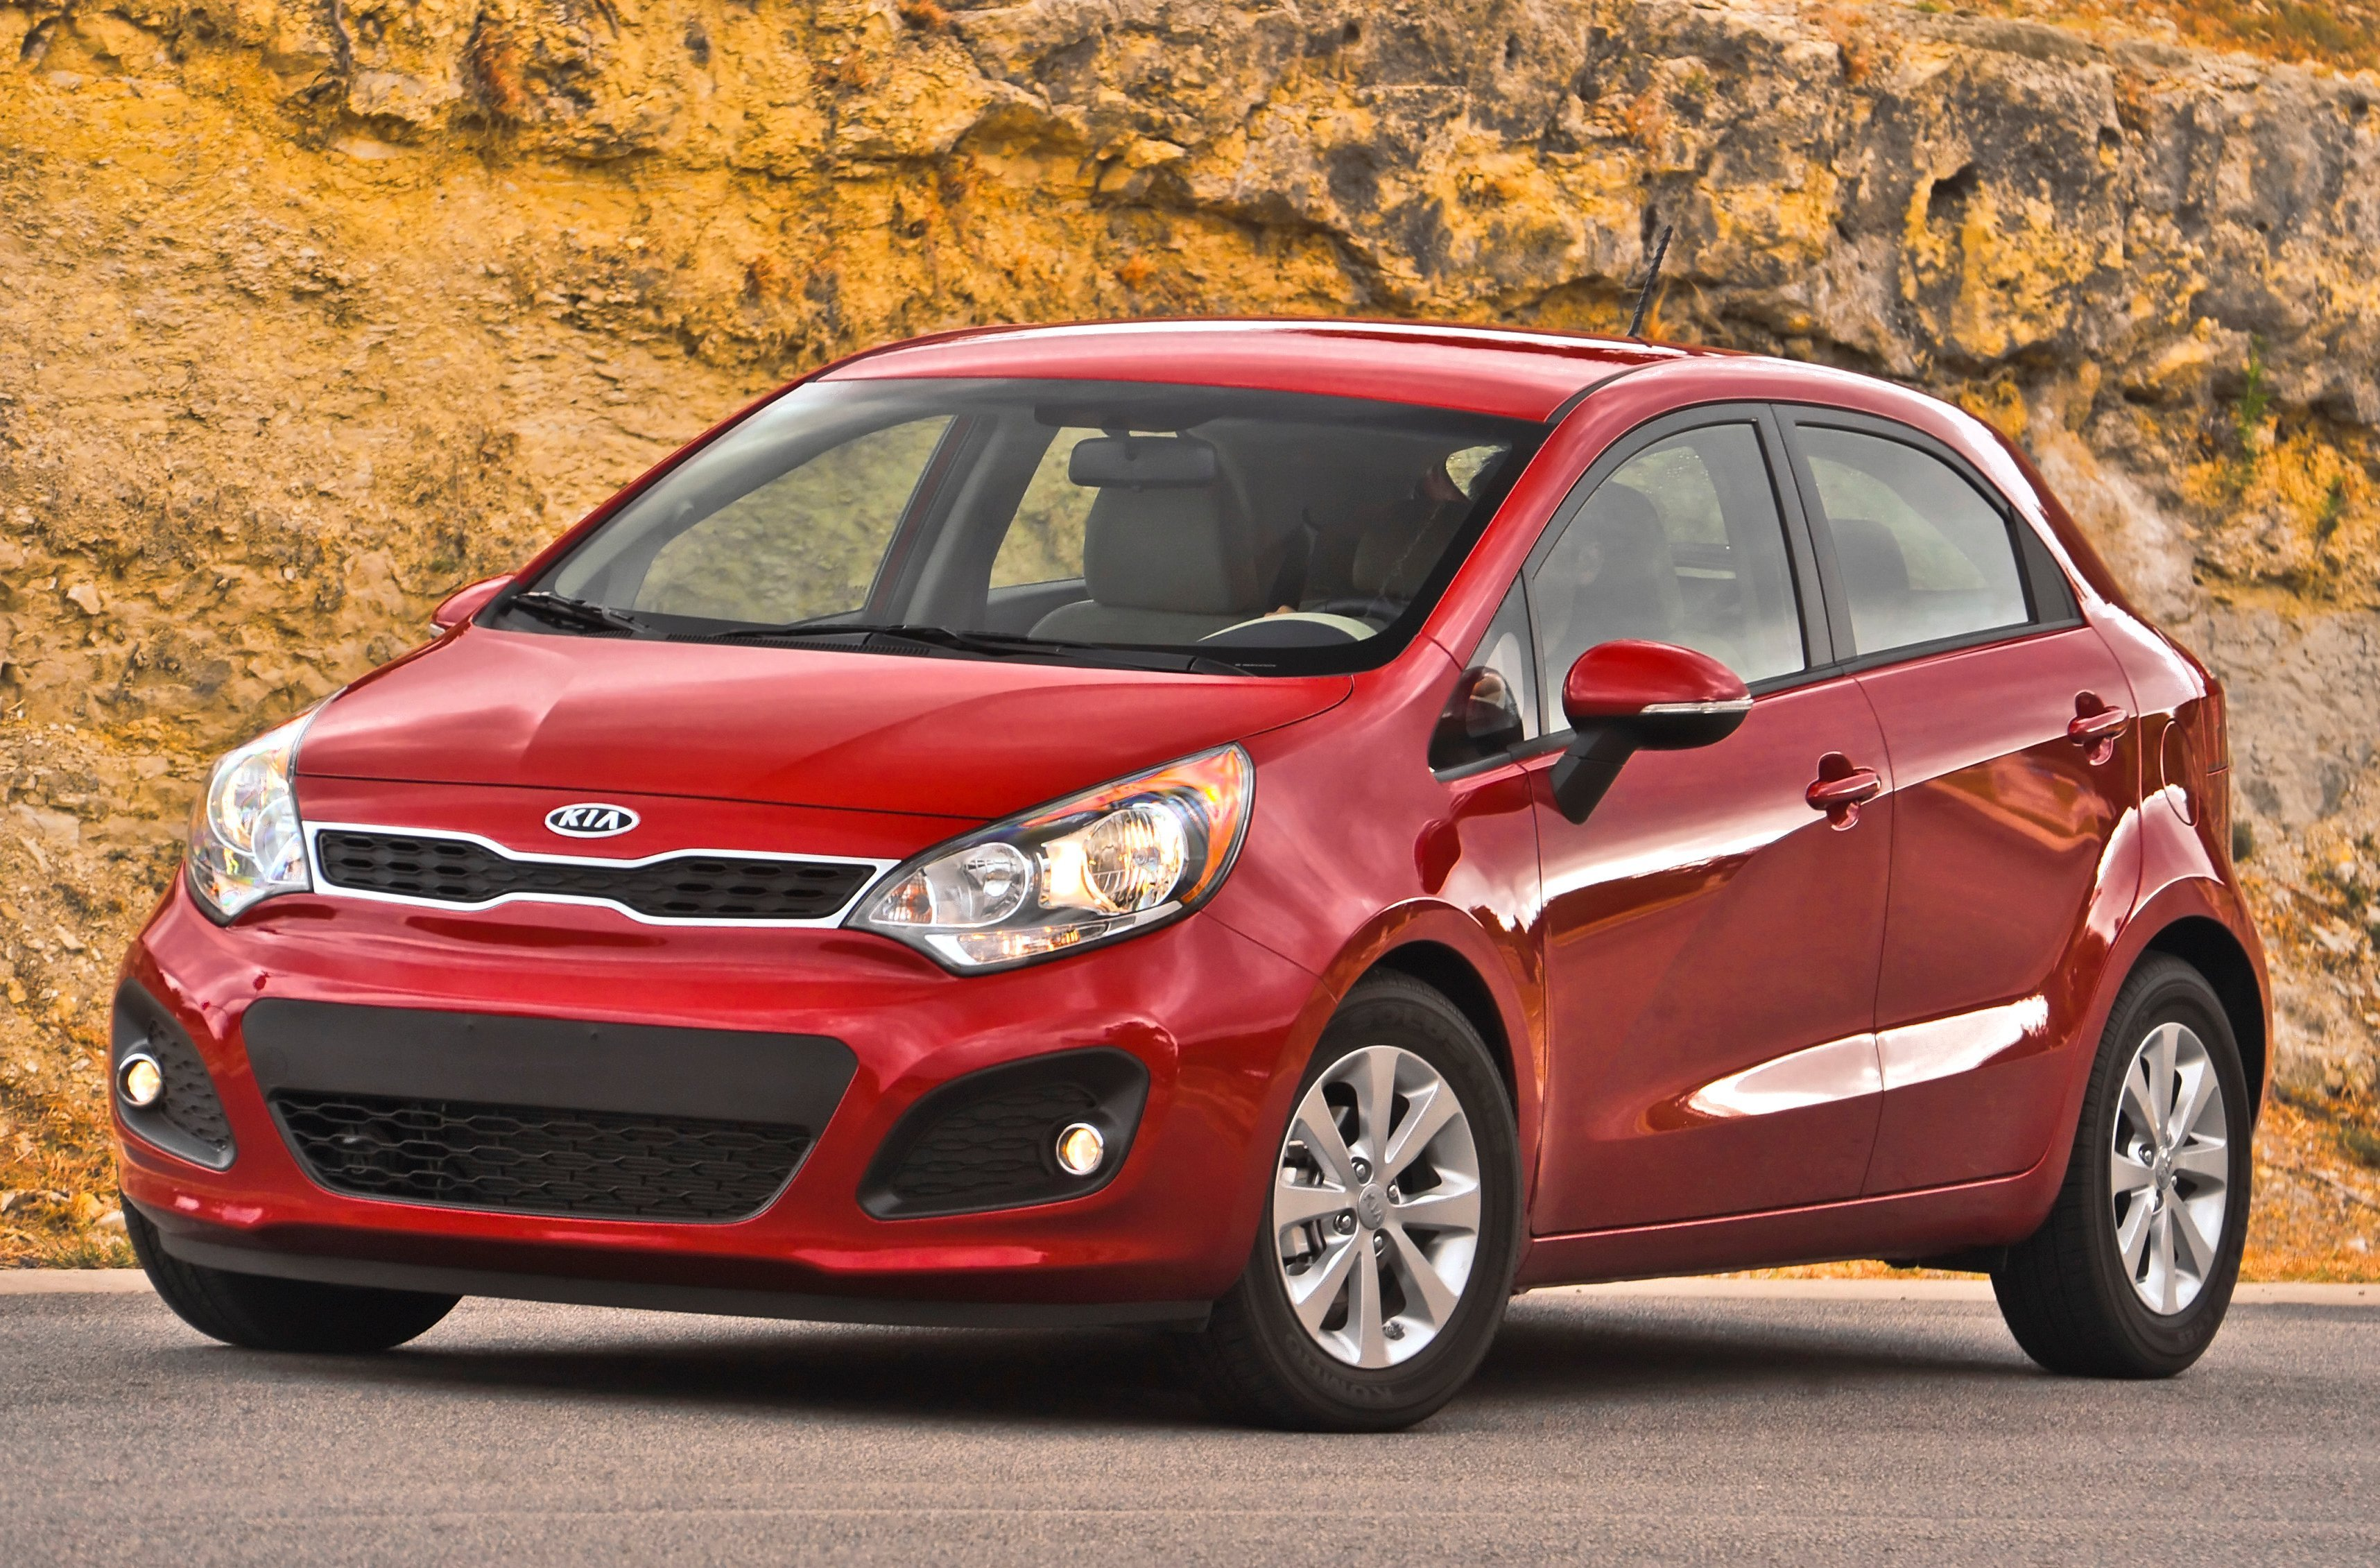 Kia Rio photo 04